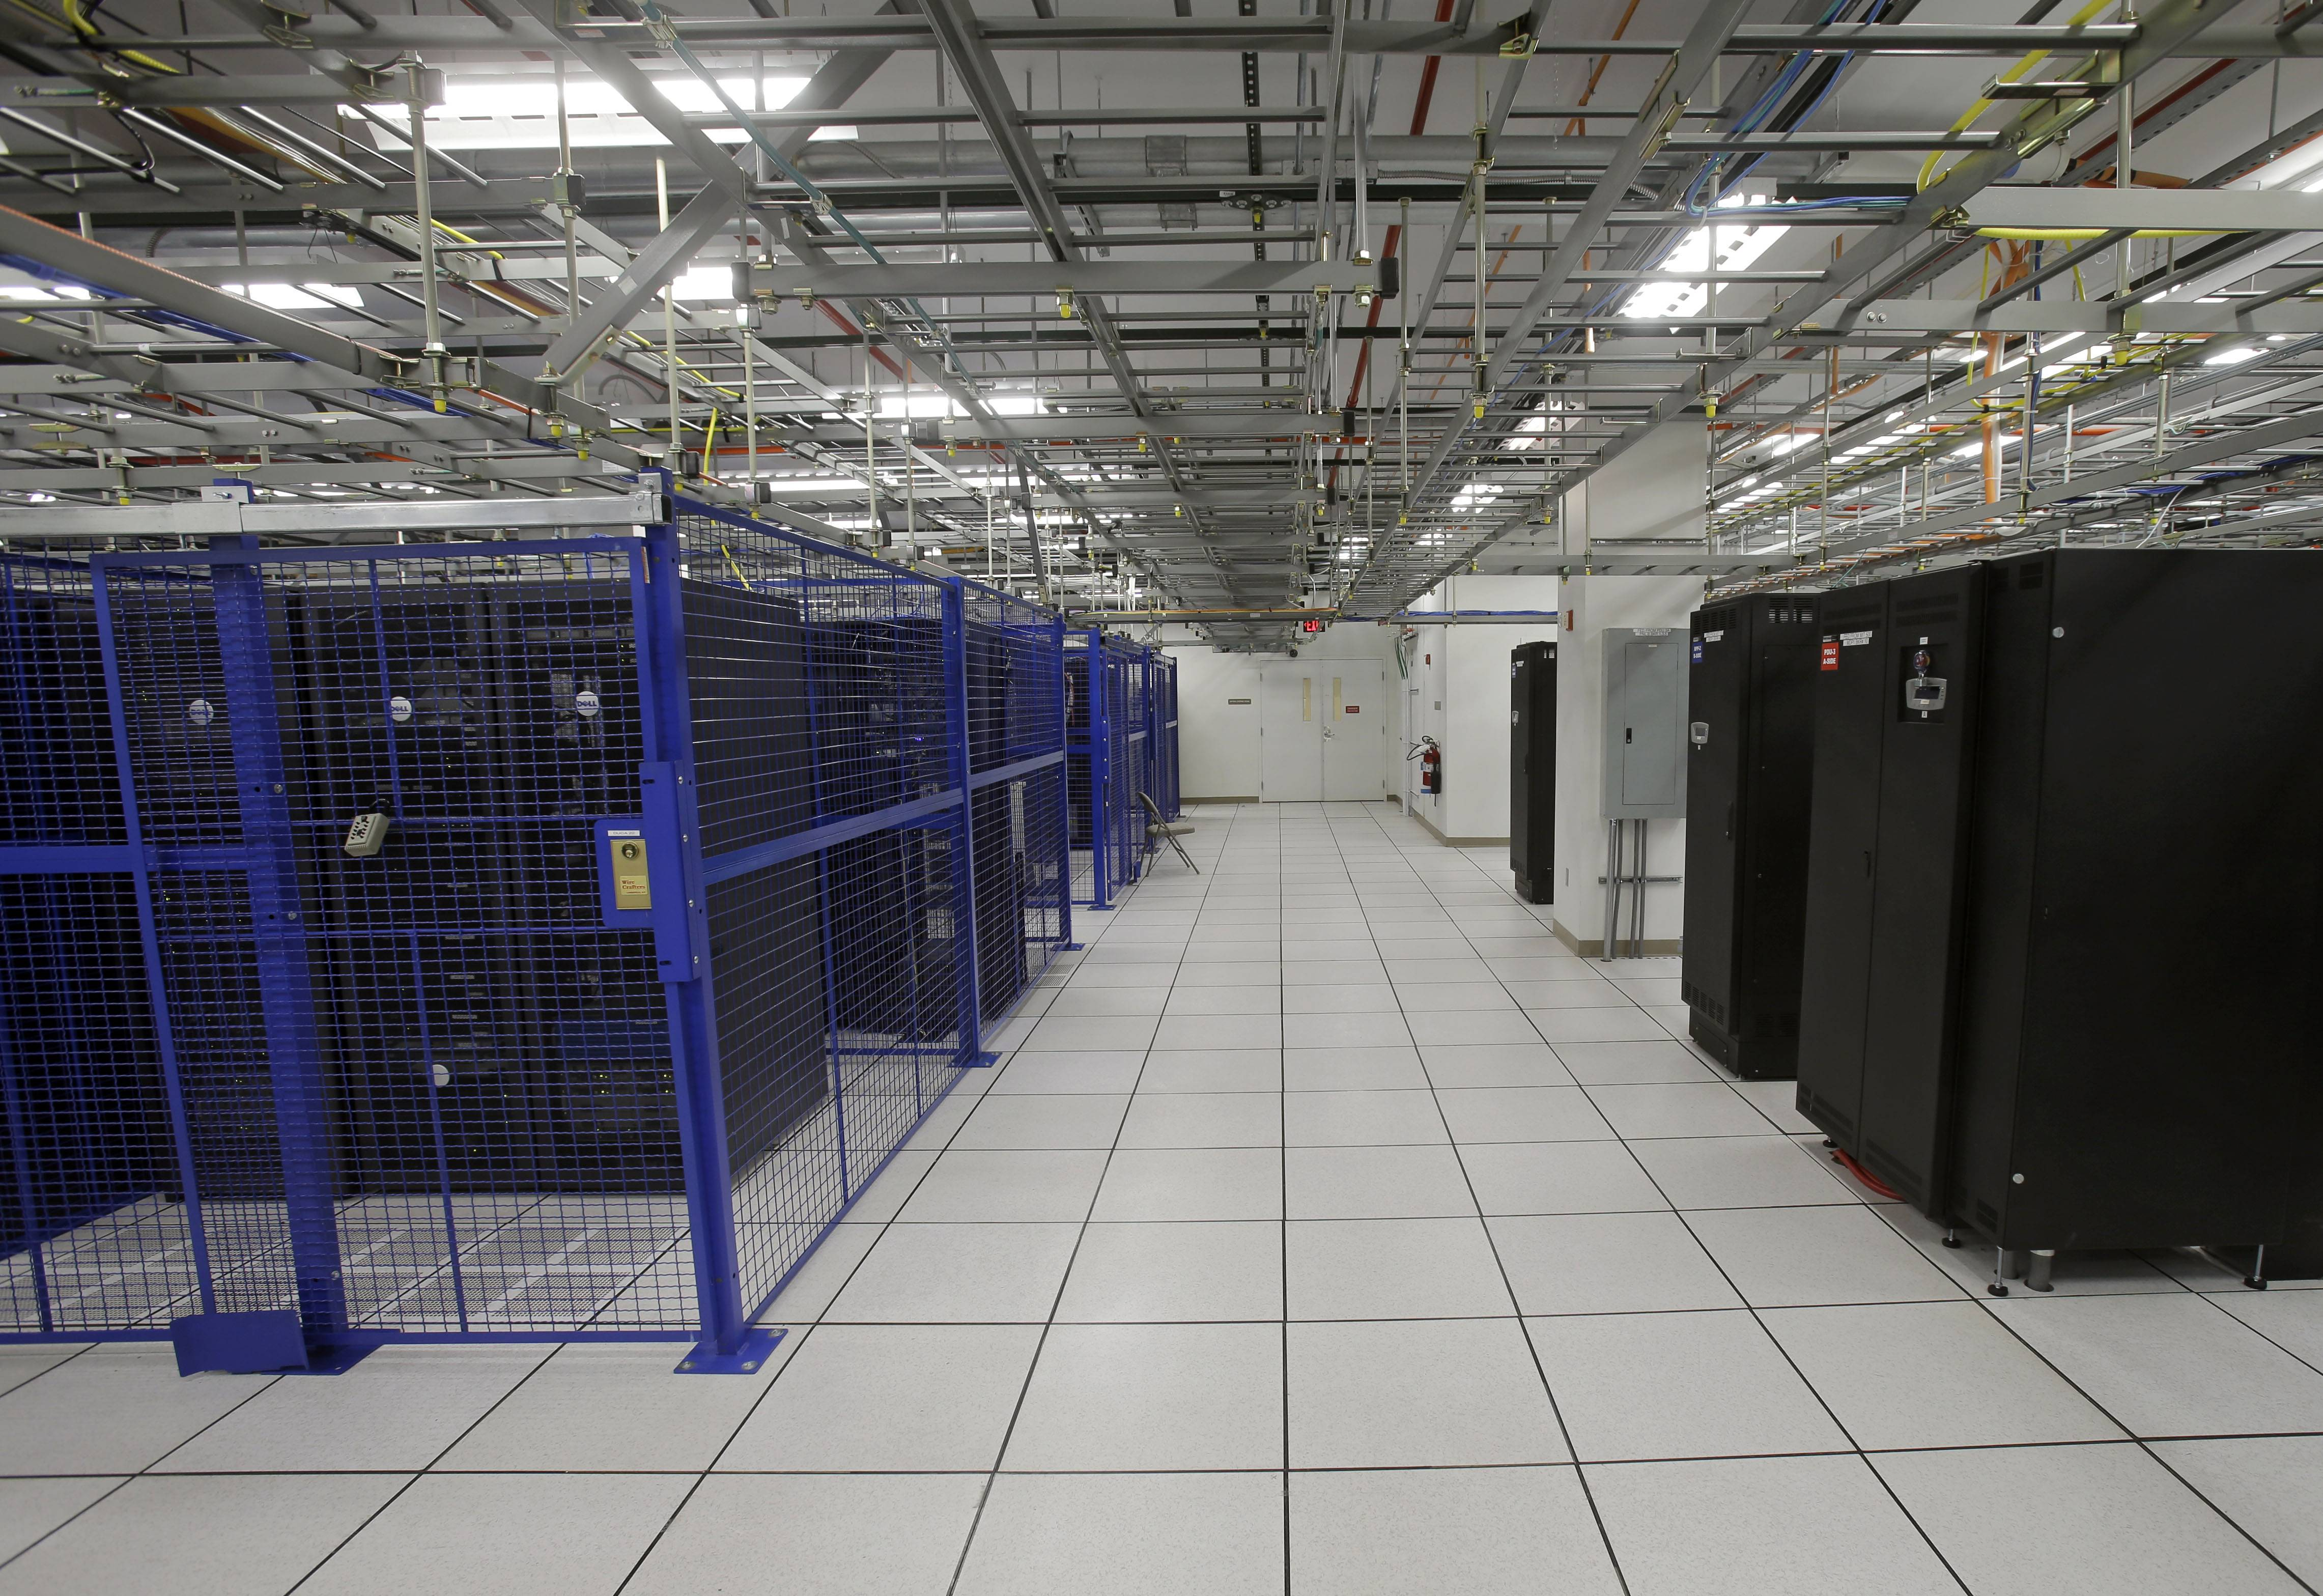 Racks of servers are protected by steel cages at BlueBridge Networks in Cleveland. A growing number of data centers, like BlueBridge, are choosing to locate in and around the city to take advantage of cheap power, a growing customer base and one of the safest environments in the country for storing digital information.